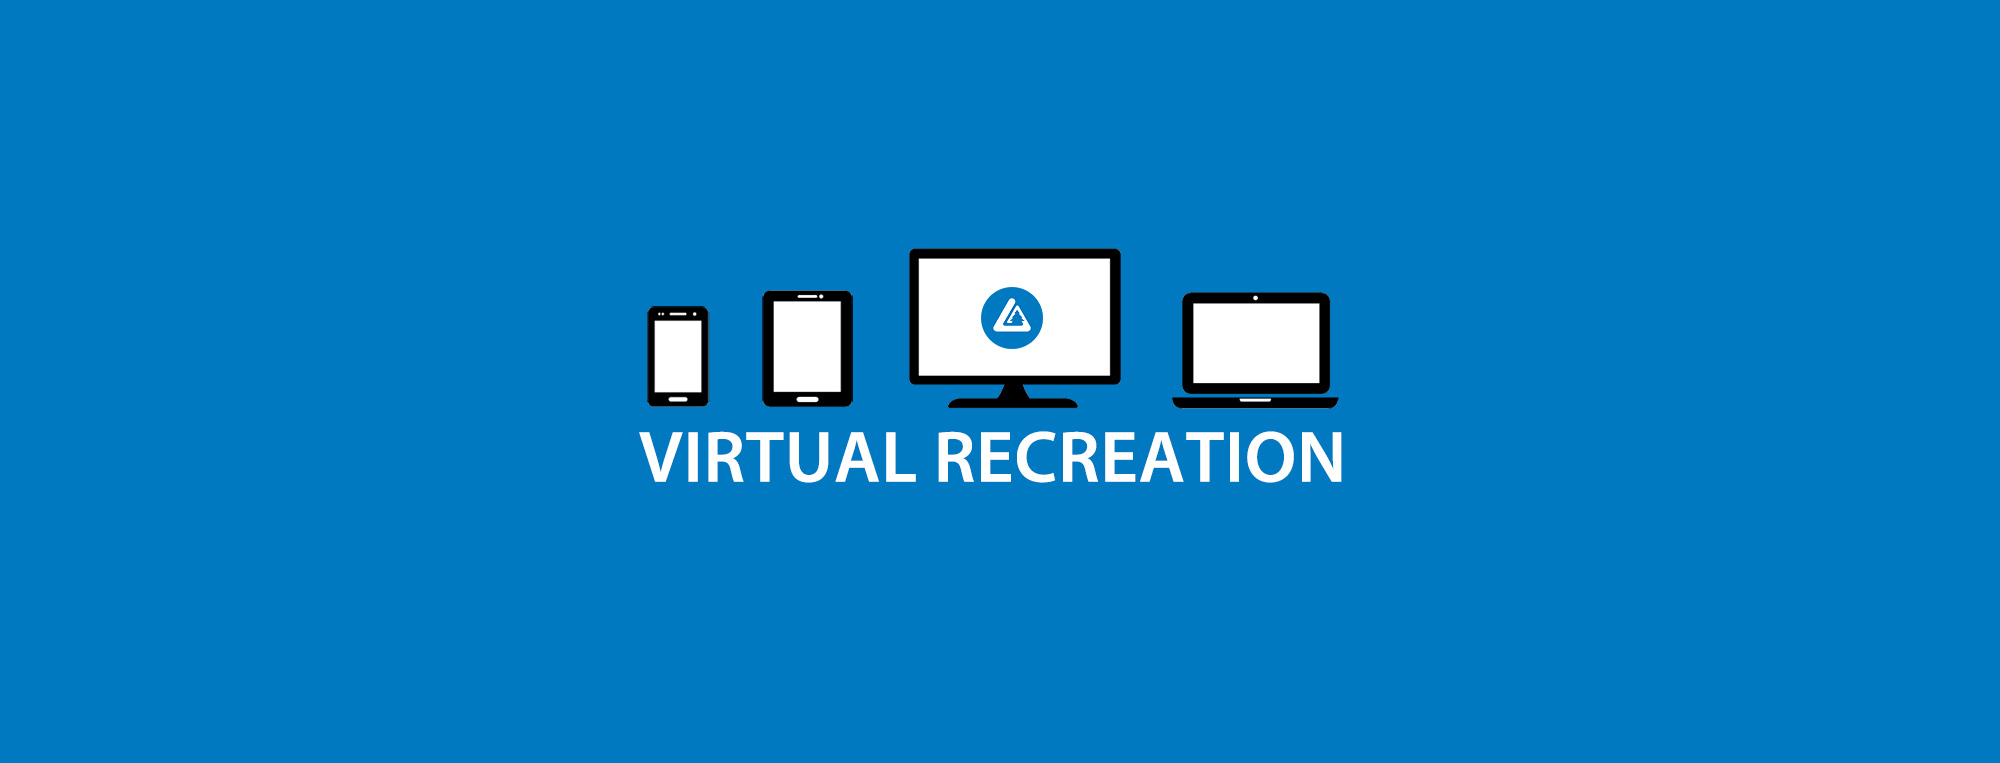 Virtual rec web slider.jpg